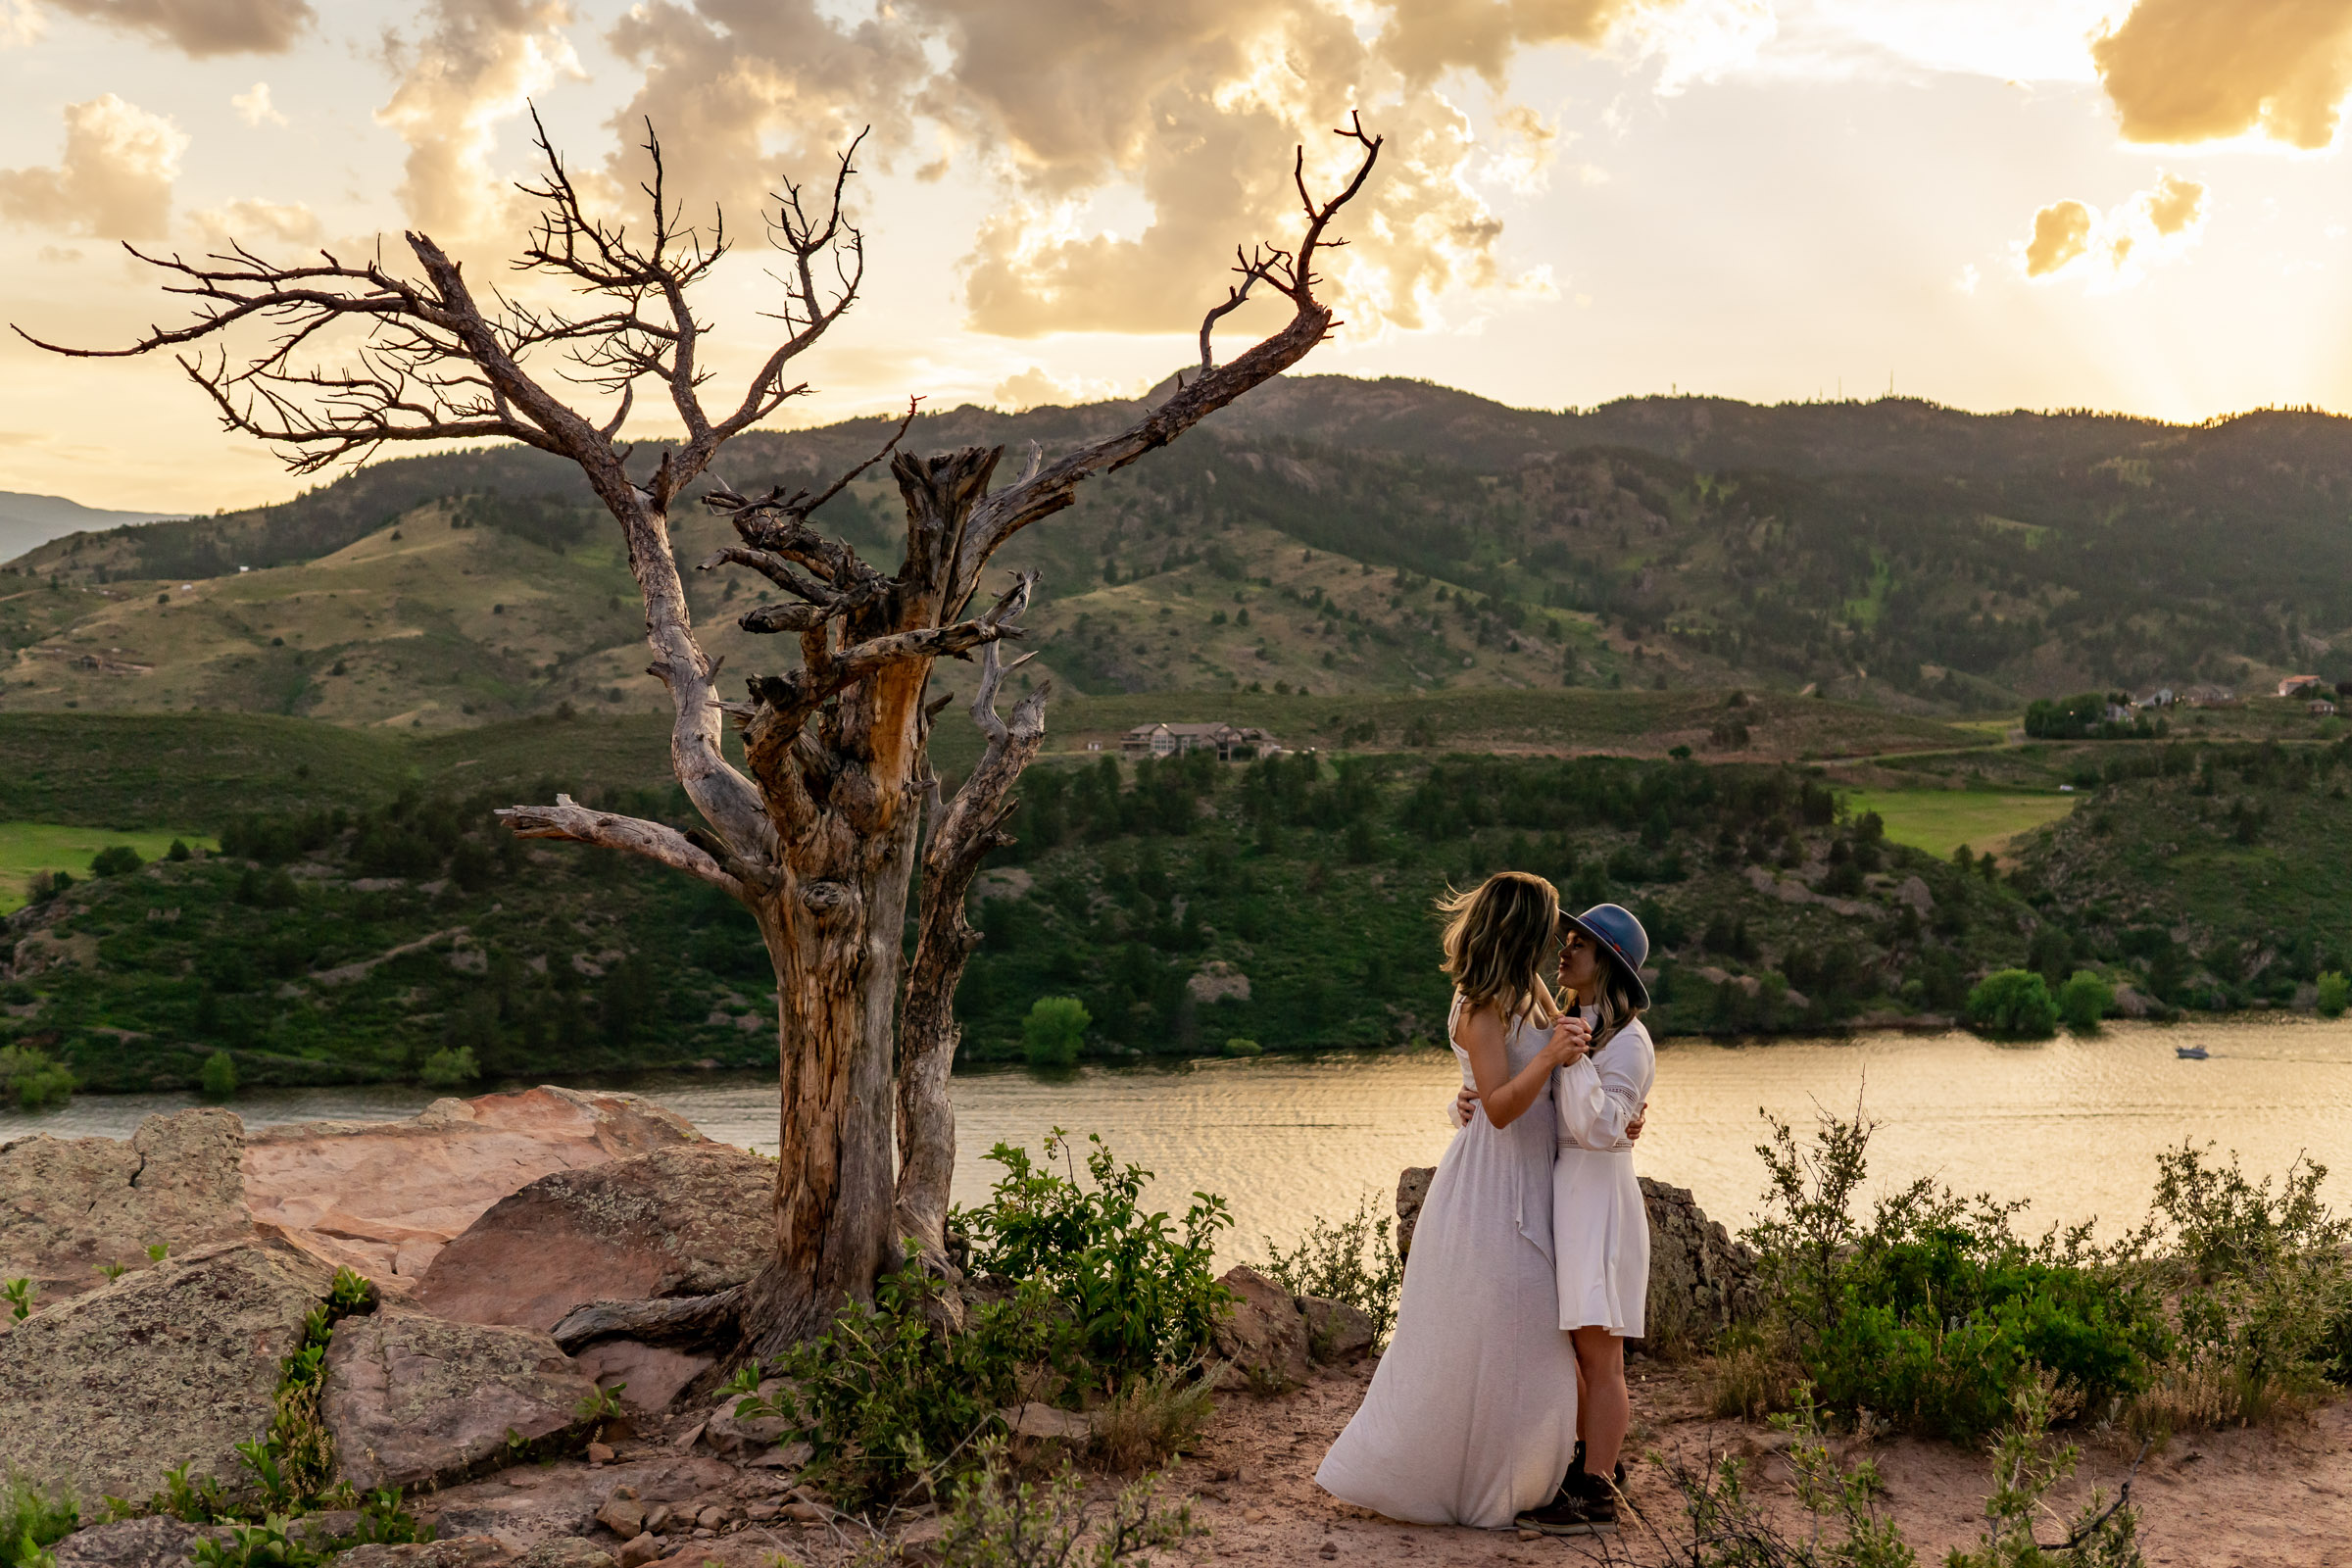 Two women wearing white dresses dancing in front of a reservoir at sunset. Photo by Gabby Jockers Photography. Horsetooth reservoir elopement, horsetooth reservoir elopement photography, fort collins elopement, colorado elopement, colorado elopement photography, horsetooth reservoir engagement photos, horsetooth reservoir engagement session, sunset engagement session, sunset elopement, hiking elopement, hiking engagement, adventure photos, adventure session, LGBT elopement, adventure elopement, denver colorado photographer